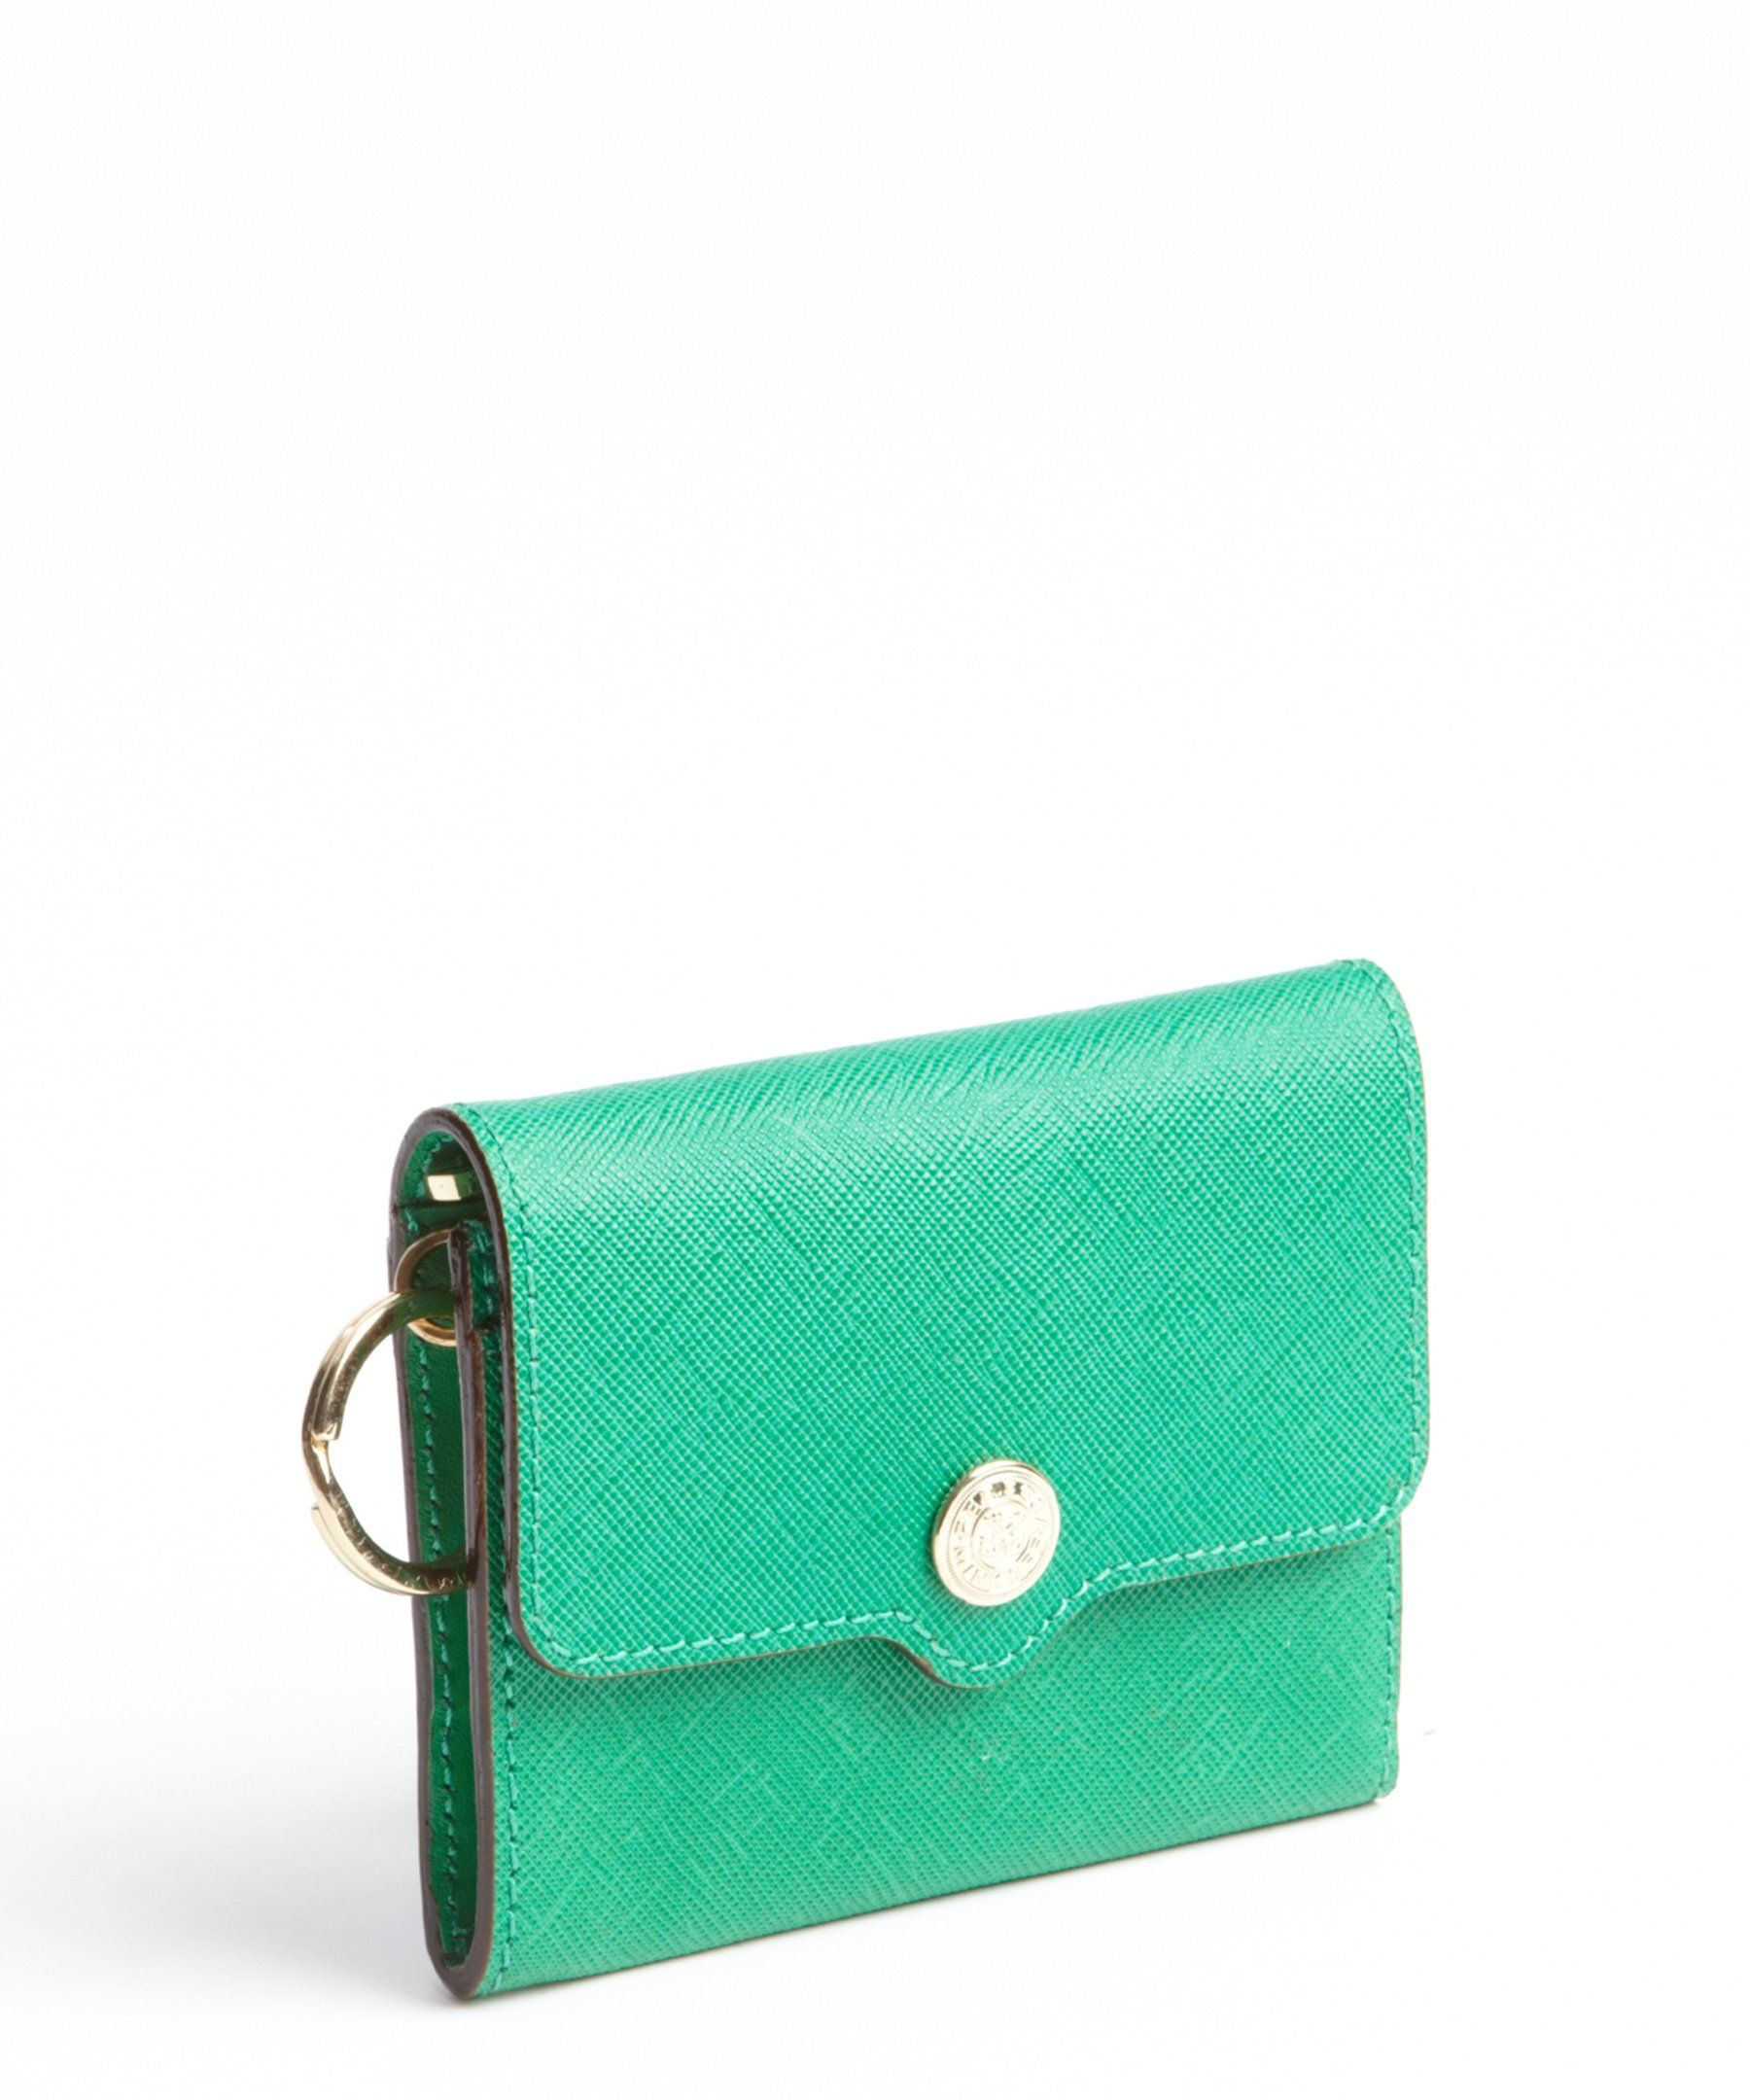 Rebecca Minkoff green grained leather 'Molly' metro holder   BLUEFLY up to 70% off designer brands $53